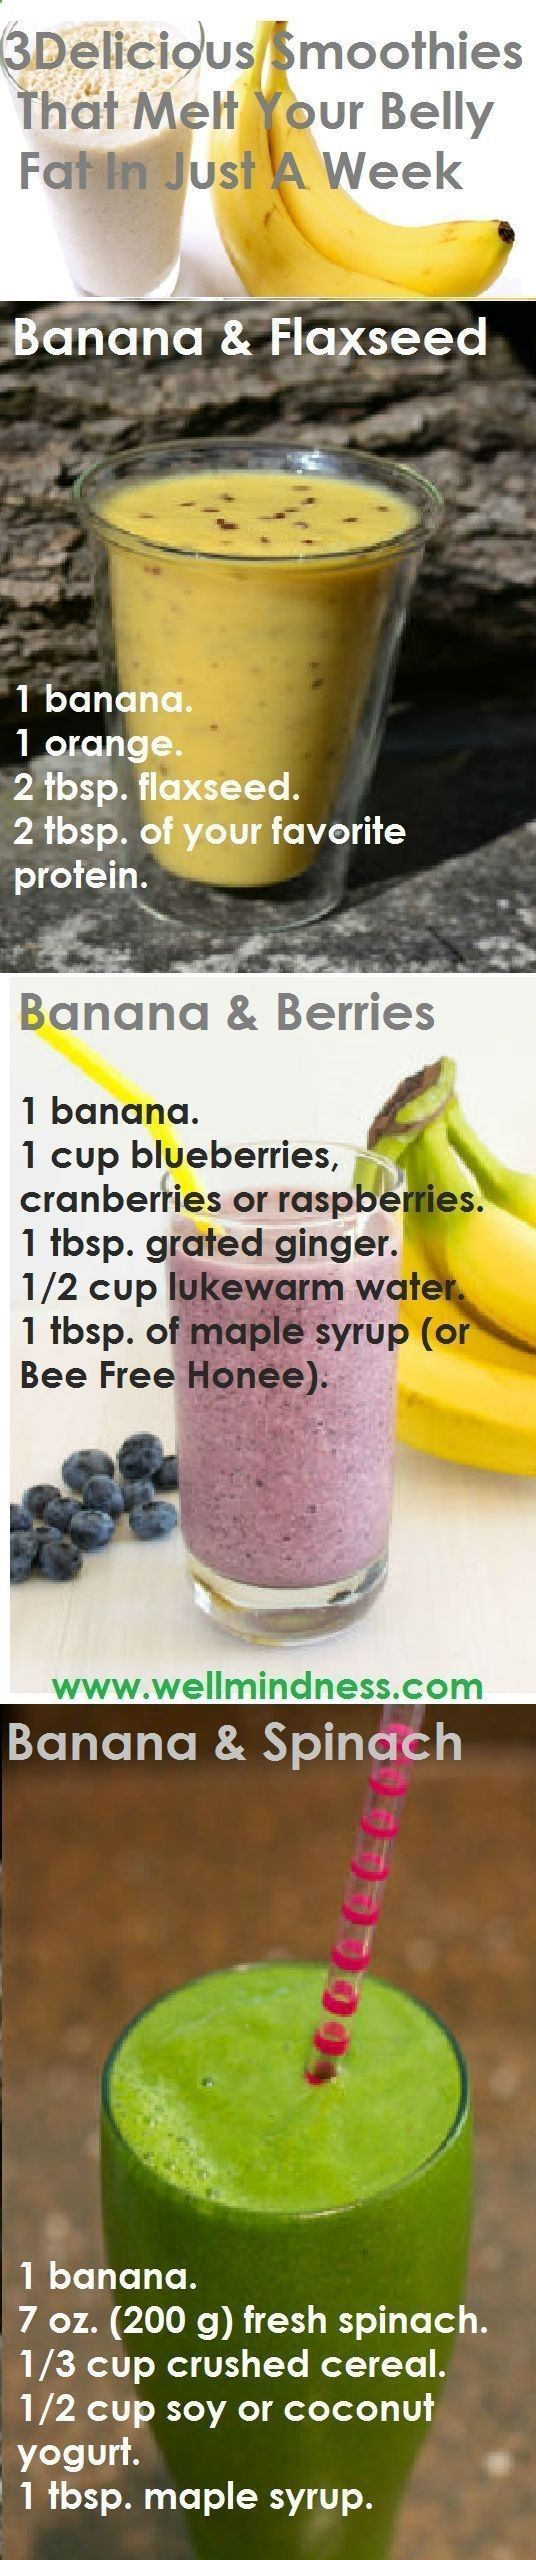 Best diet ever to lose weight fast picture 7